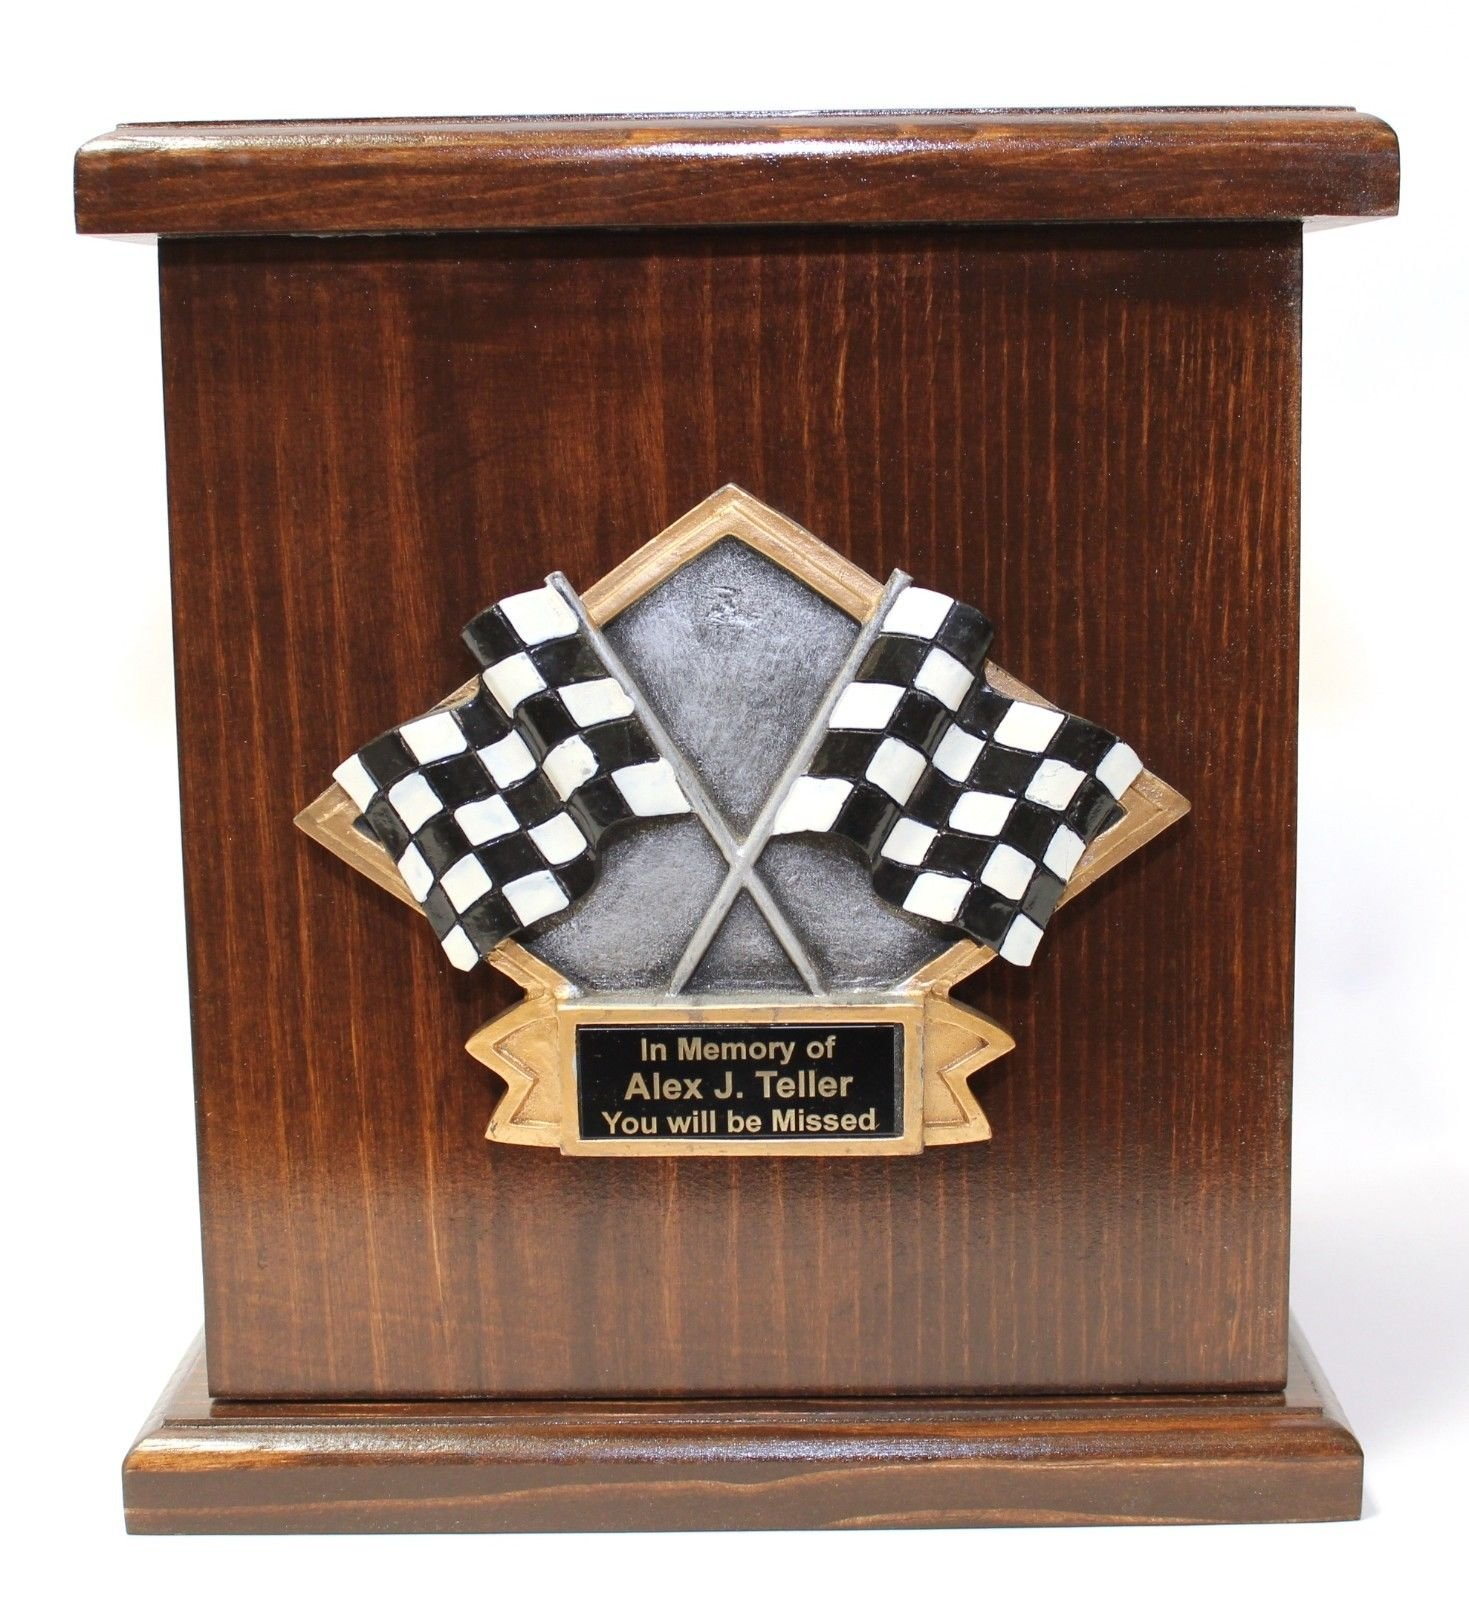 Car racing funeral cremation urn,adult memorial wooden urn w/personalization